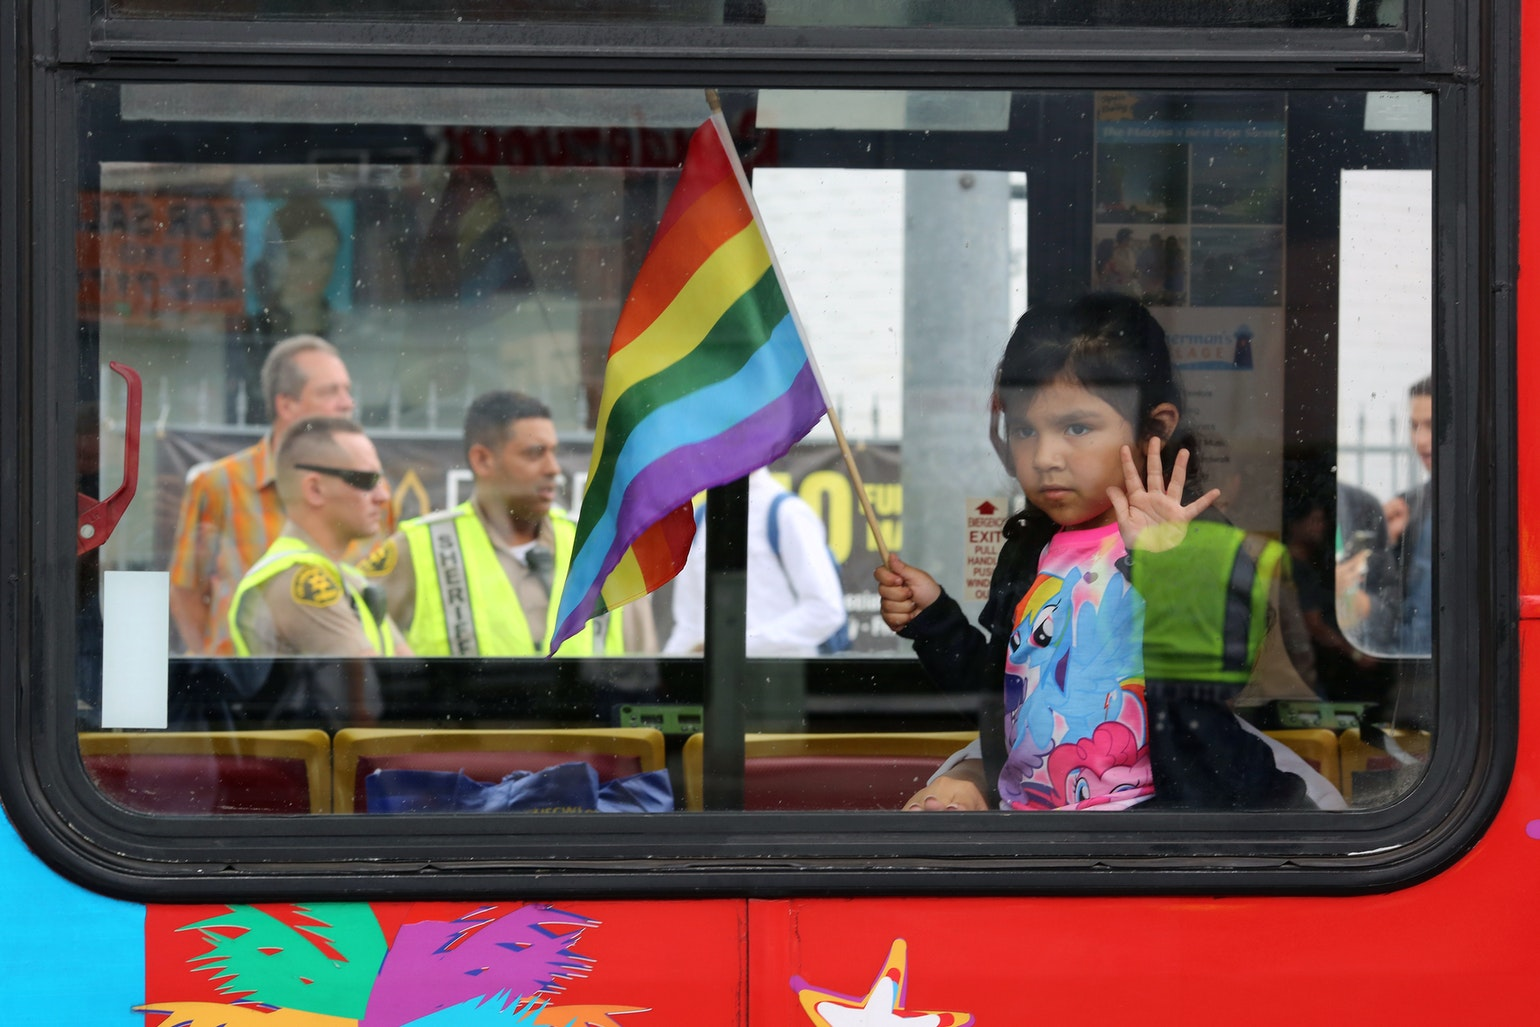 Los Angeles County Sheriff's deputies are seen behind a girl riding in a bus at the 46th annual Los Angeles Gay Pride Parade in West Hollywood